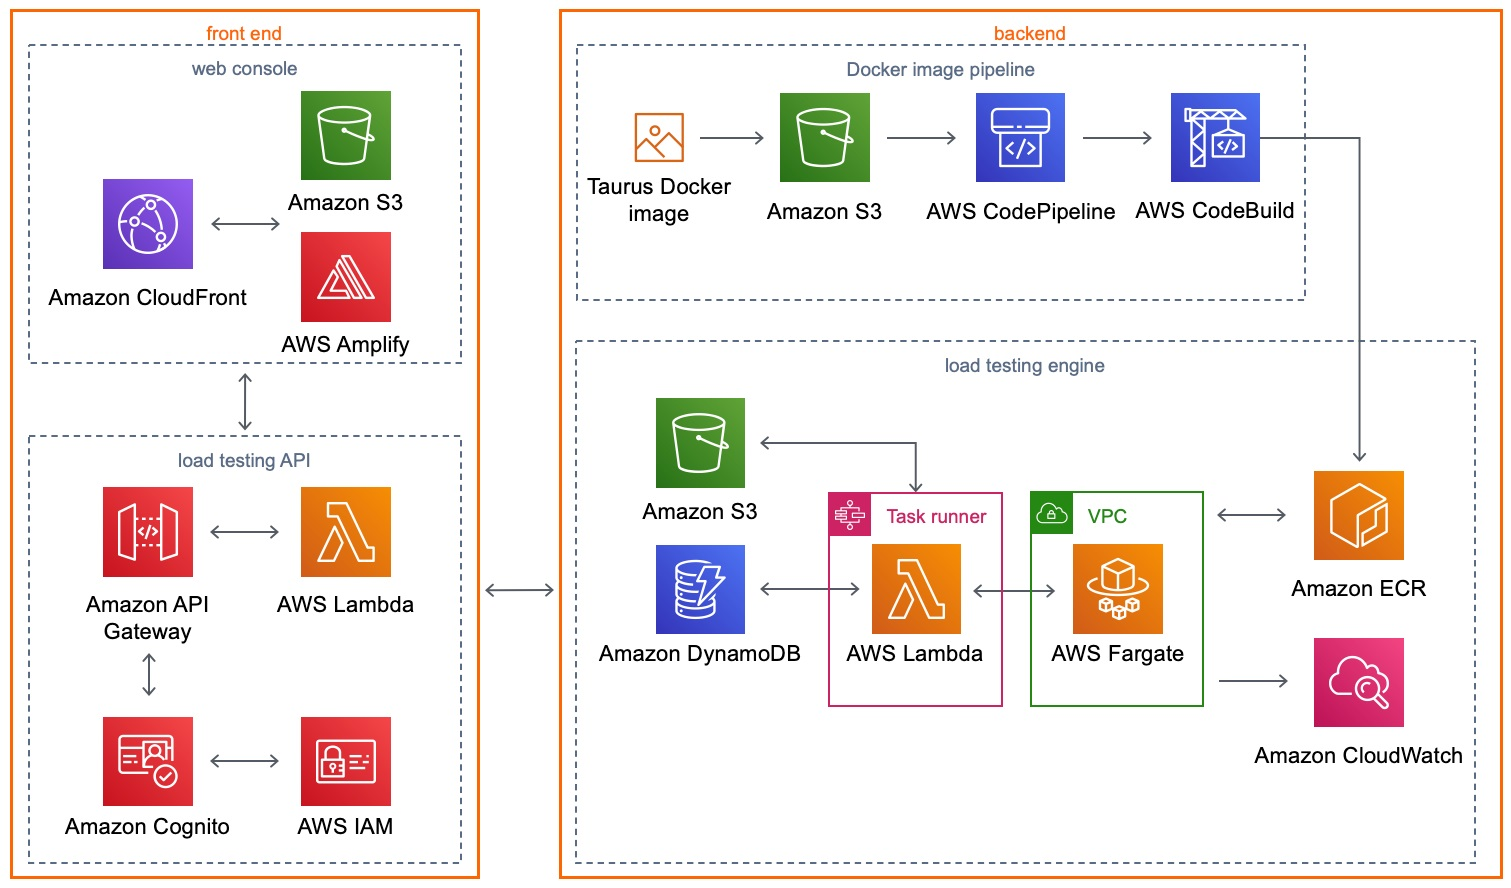 Distributed Load Testing by AWS